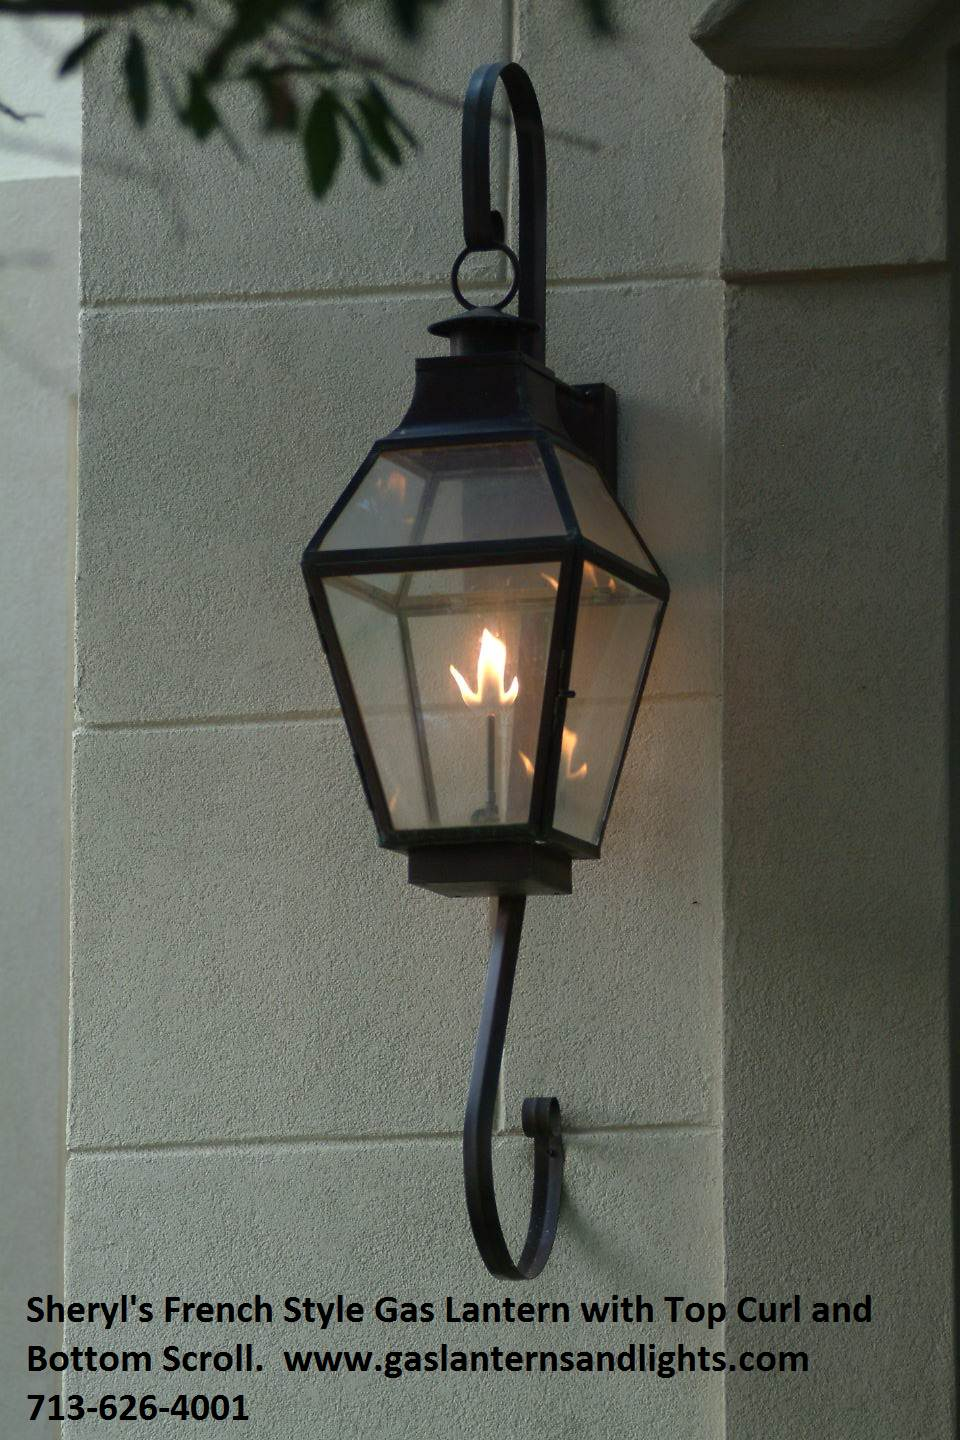 Sheryl's French Style Lanterns with Glass Tops